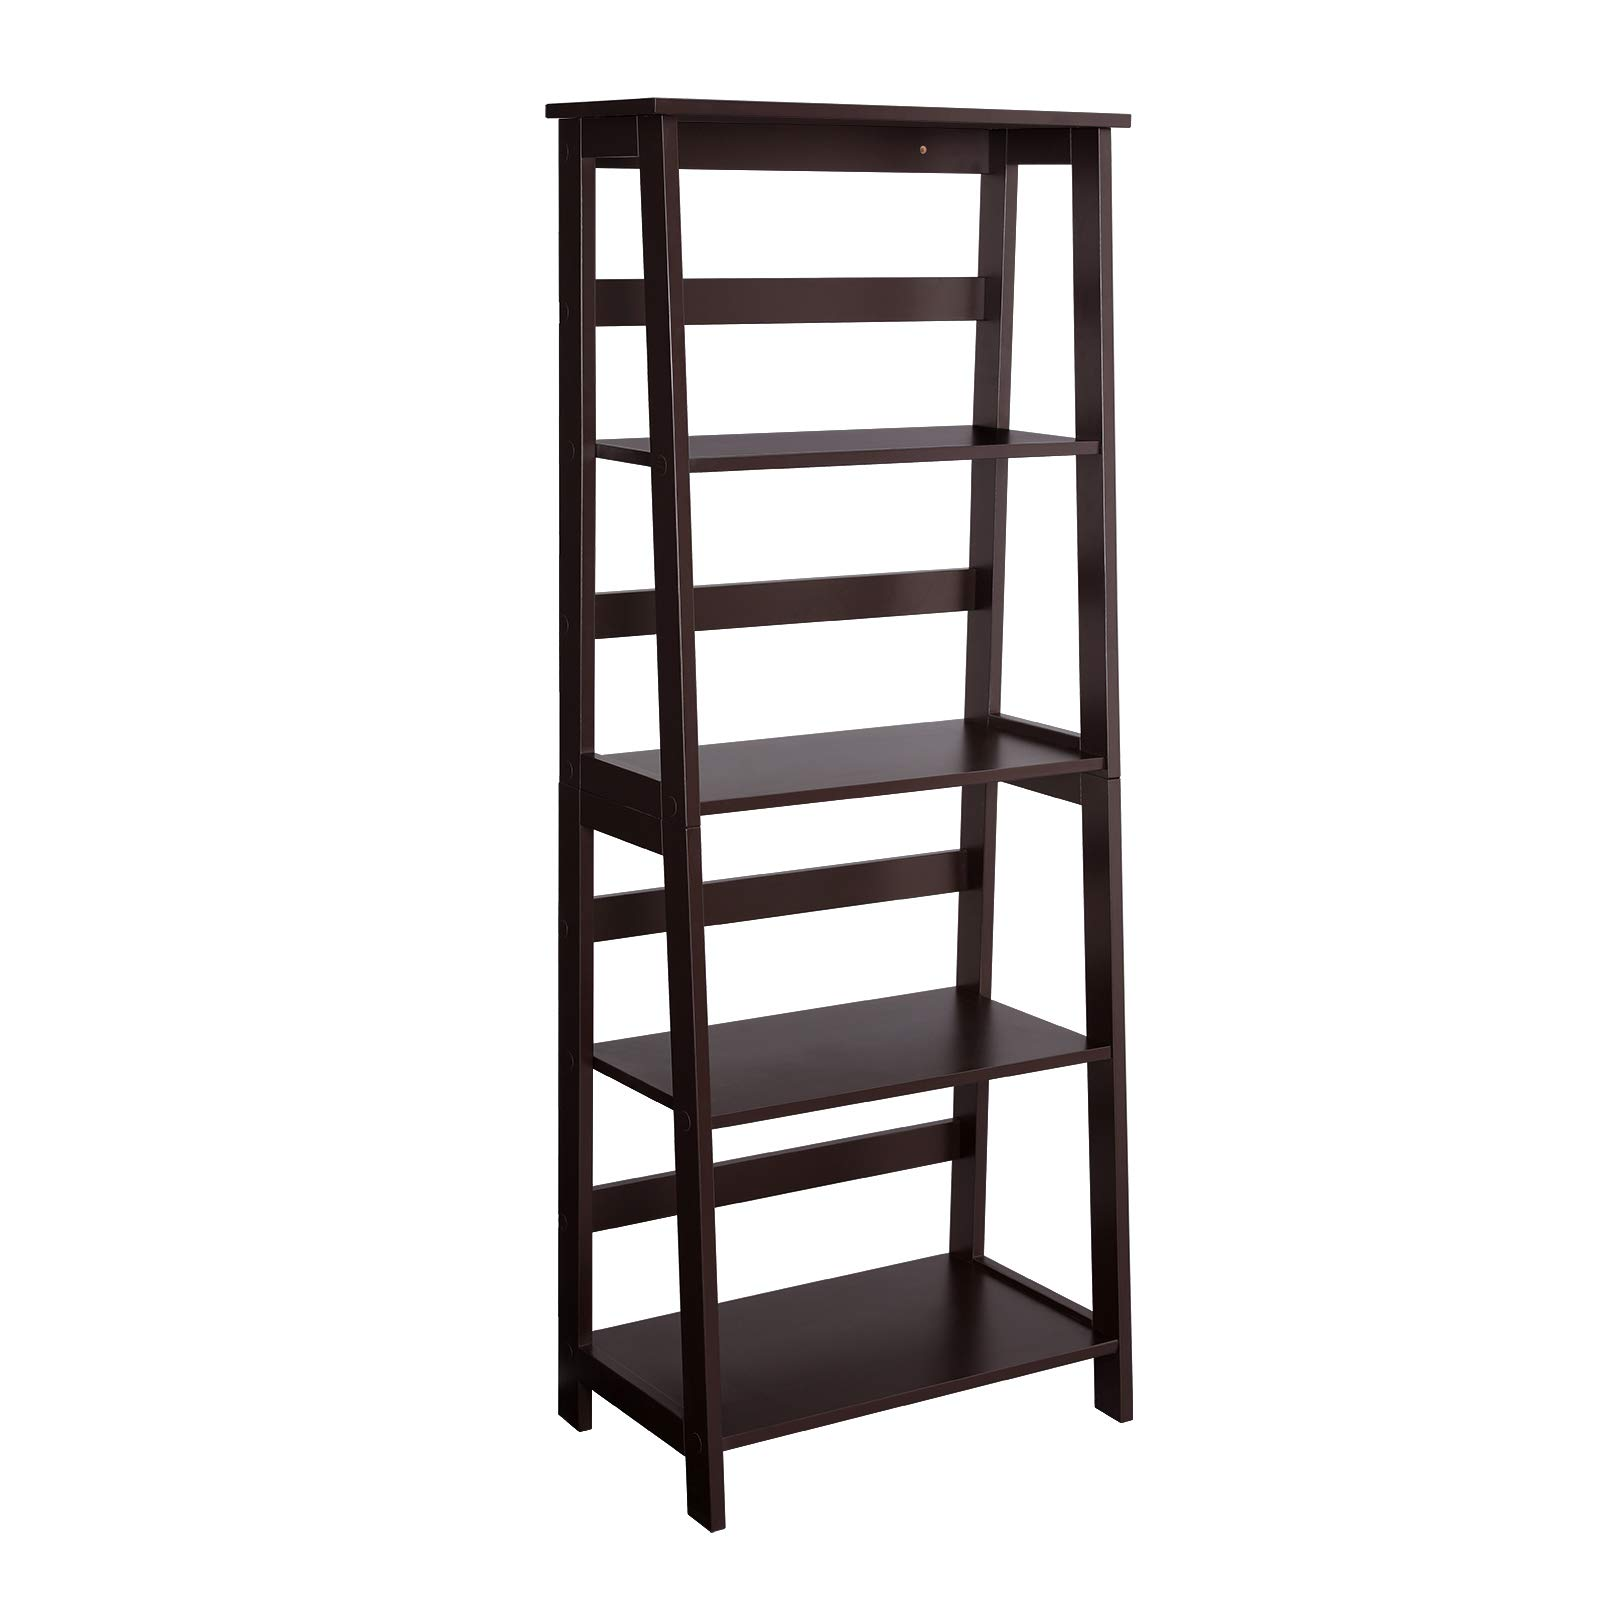 VASAGLE Simple Ladder Shelf, 4-Tier Bookcase, Multifunctional Display Stand for Living Room, Engineered Wood Stand for Sunroom, Brown ULLS90BRV1 by VASAGLE